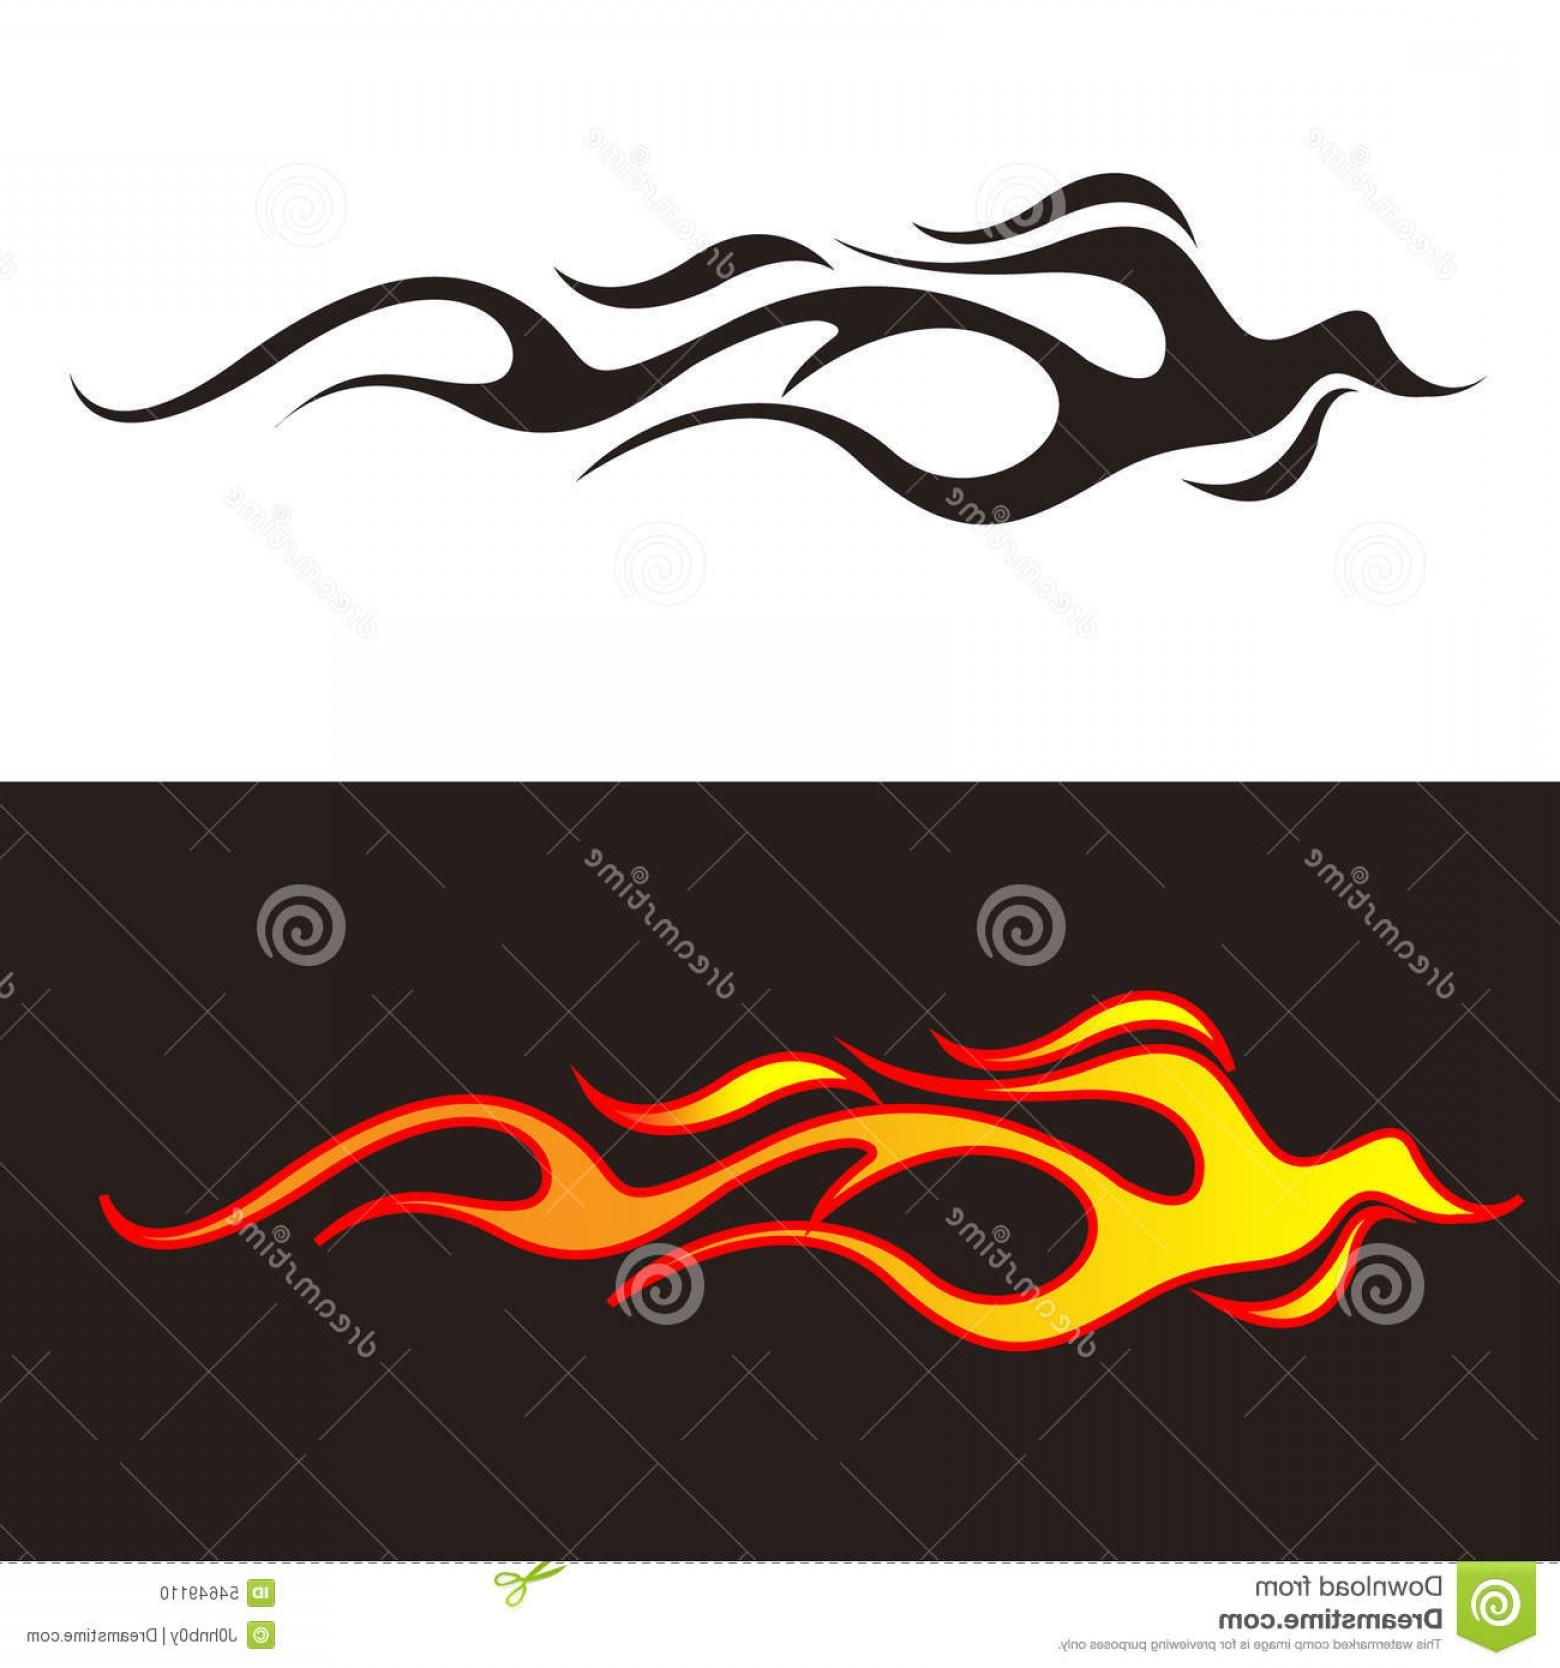 Tribal Flames Vector Car: Stock Illustration Car Tattoo Tribal Flames Illustration Decal Stickers Image